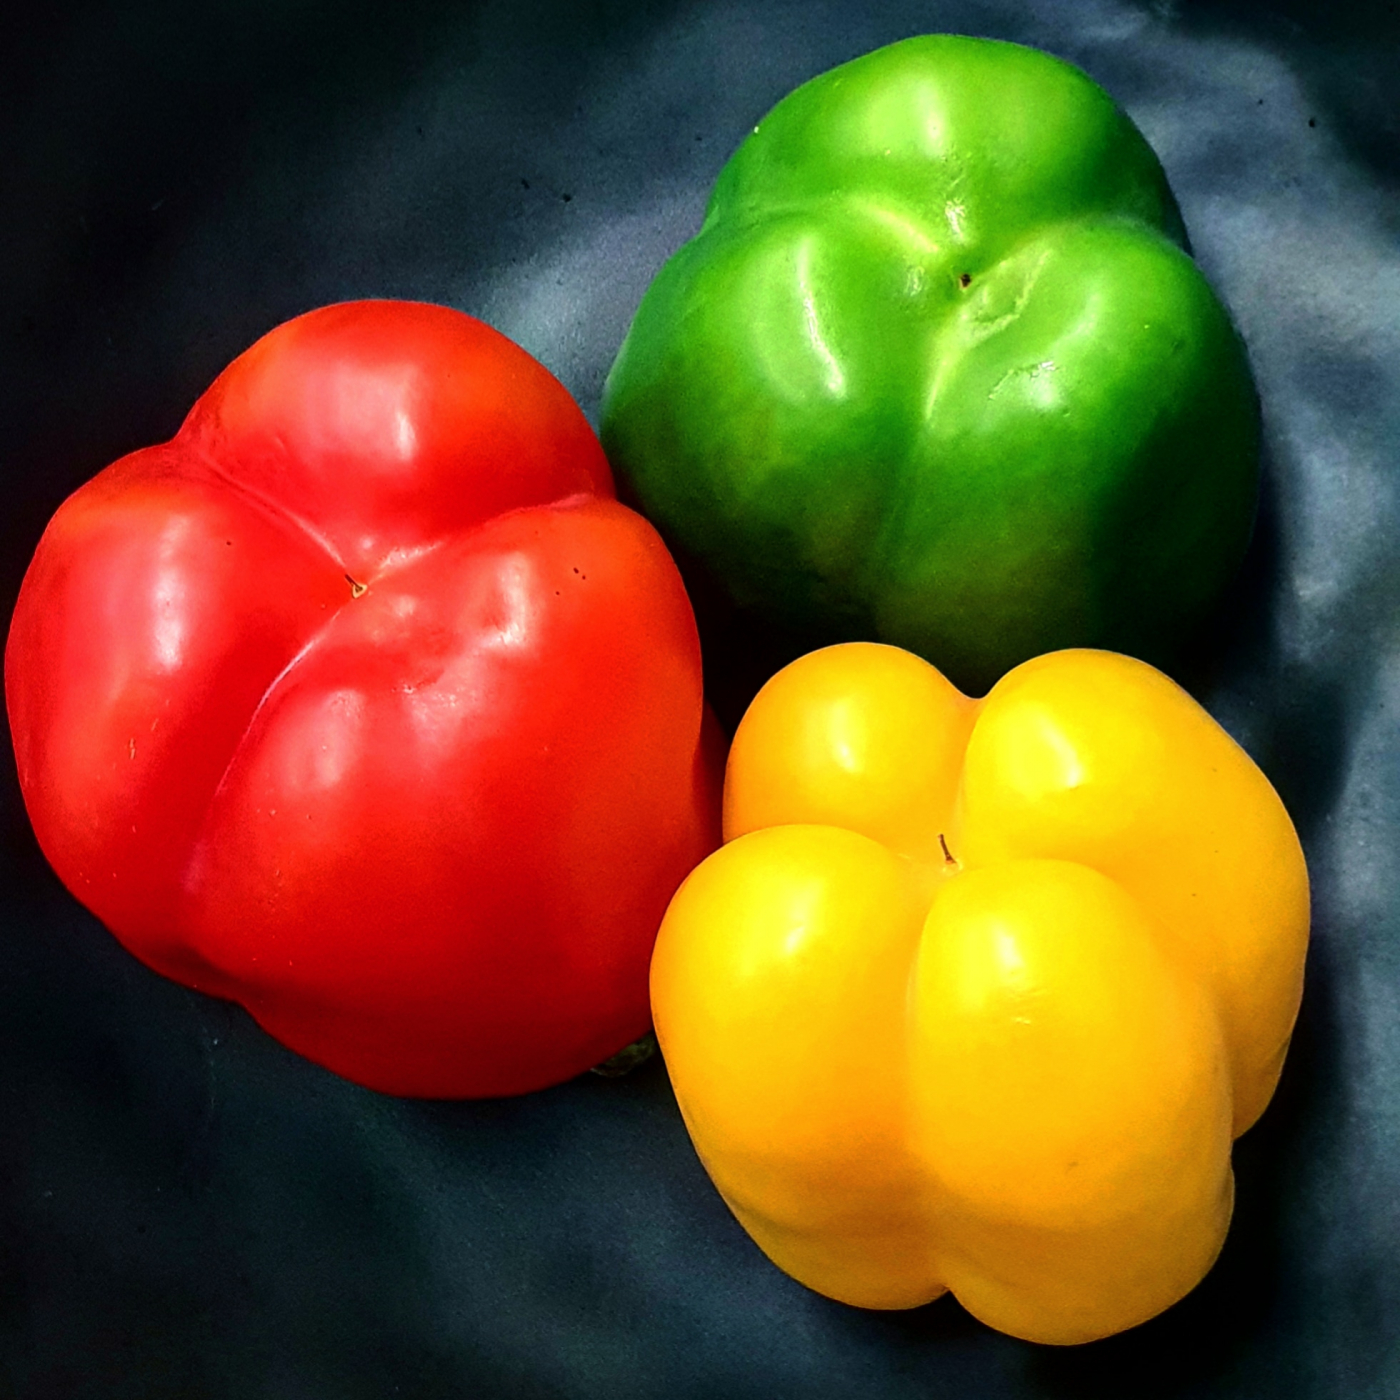 The bell pepper is the fruit of plants in the Grossum cultivar group of the species Capsicum annuum.       Bell peppers originated in Mexico, Central America, and South America.  red, green, yellow and orange bell peppers are all the same type of pepper but just at different stages of ripeness. Green peppers are unripe, red are fully ripe, with yellow and orange in between the two.  We use them in our 'Cauliflower Manchurian' recipe.